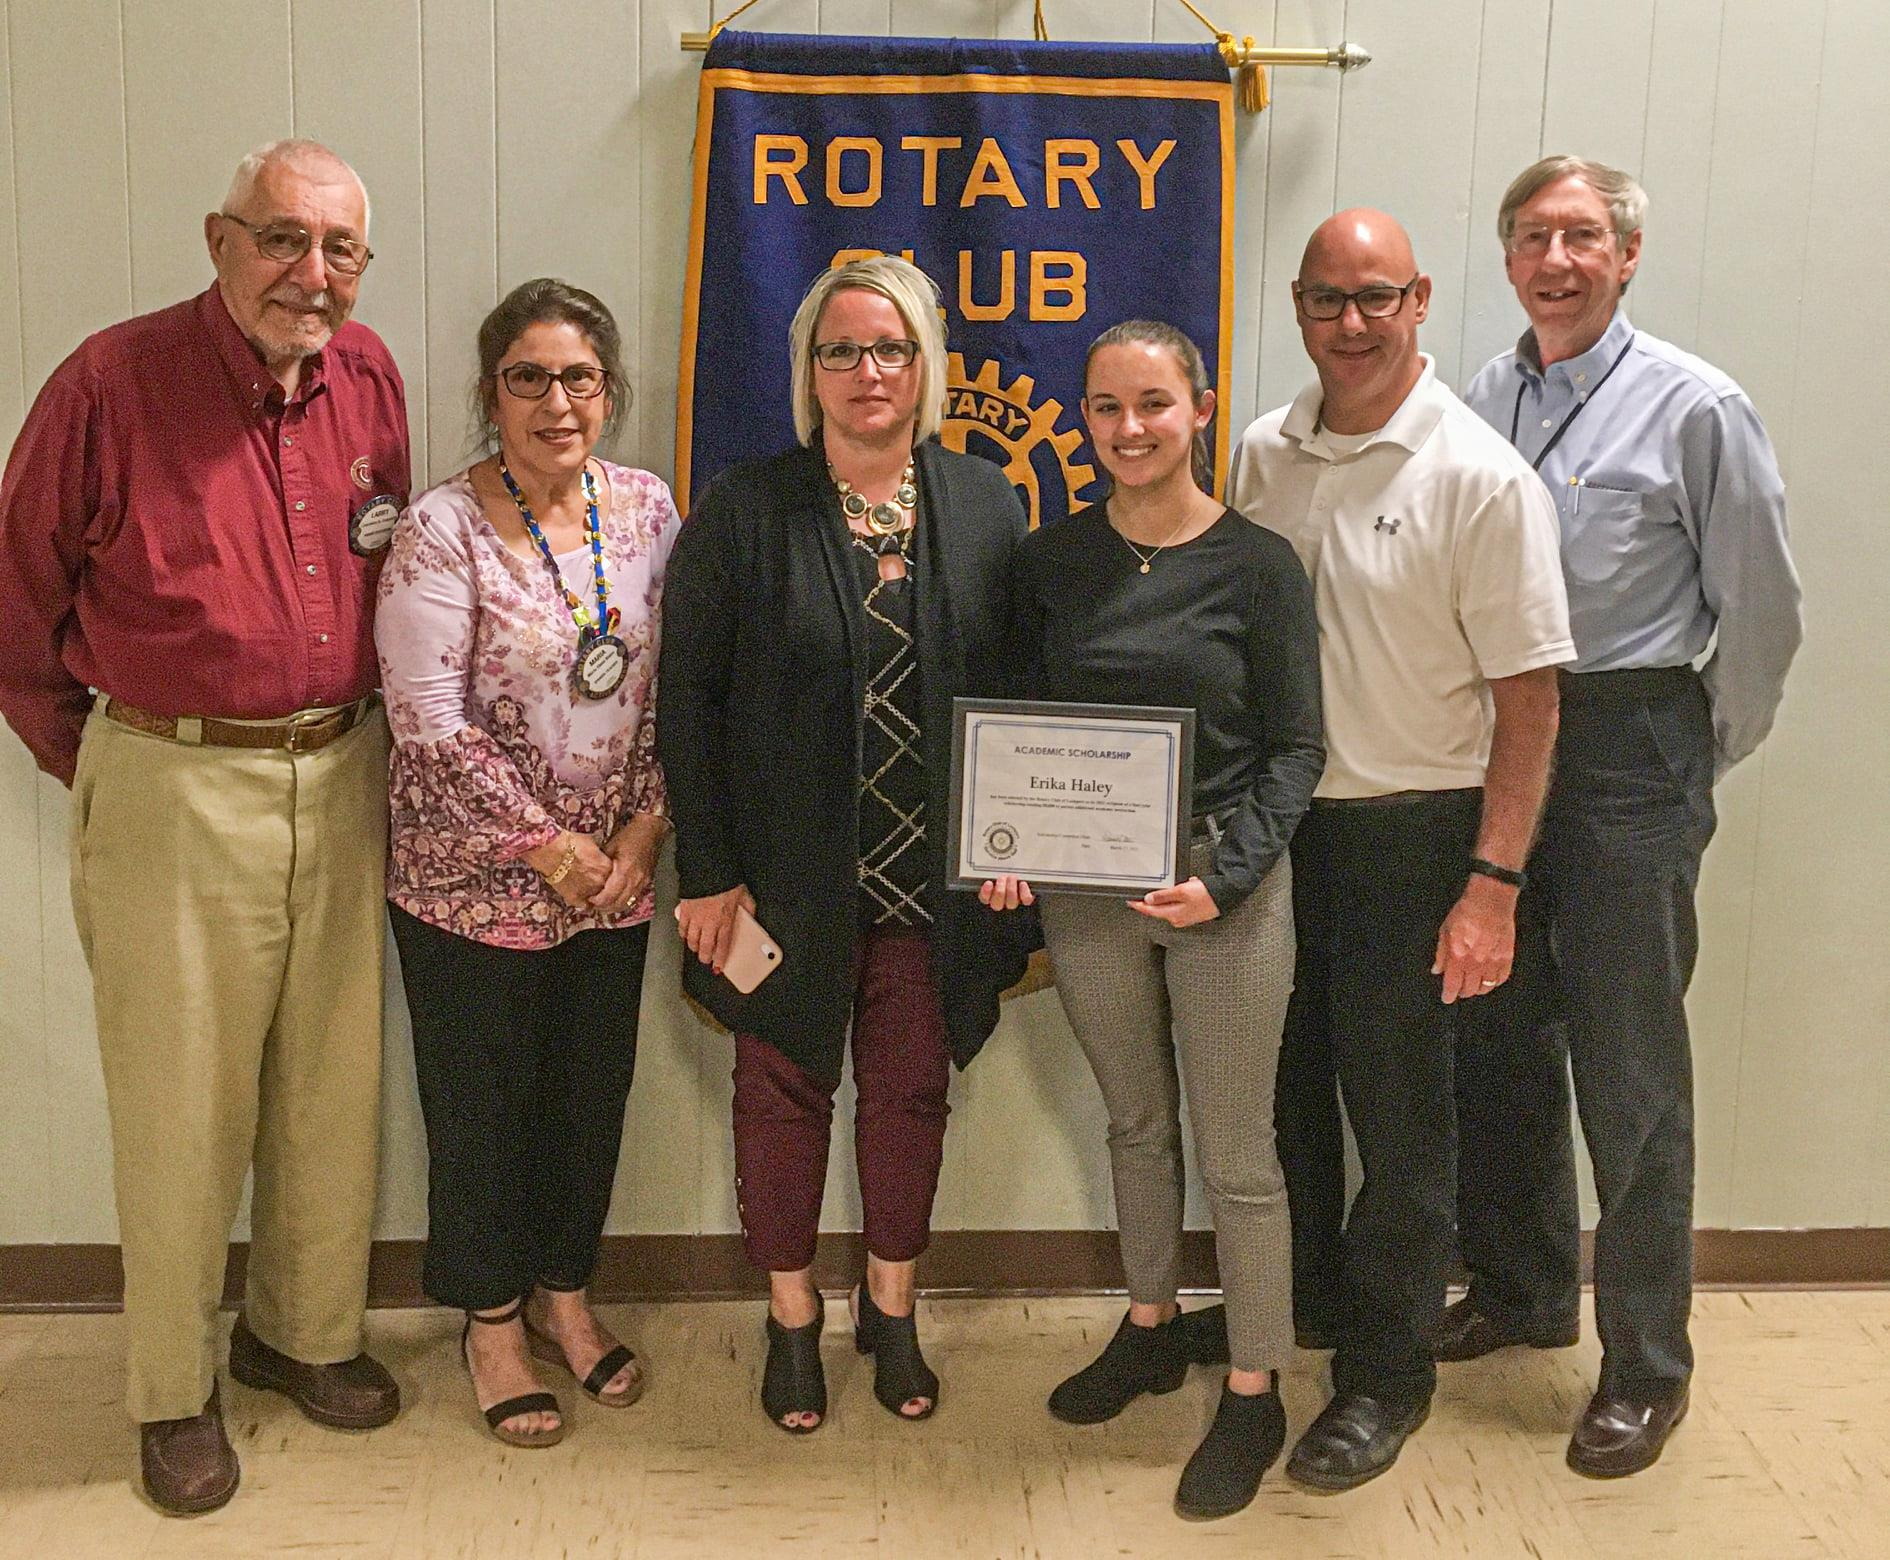 (L to R):  Dr. Larry Cappiello, Maria Biano, Lisa Haley (mother), Scholarship Recipient Erika Haley, Shawn Haley (father), Steve Cotten (all Rotarians are members of the Scholarship Committee).